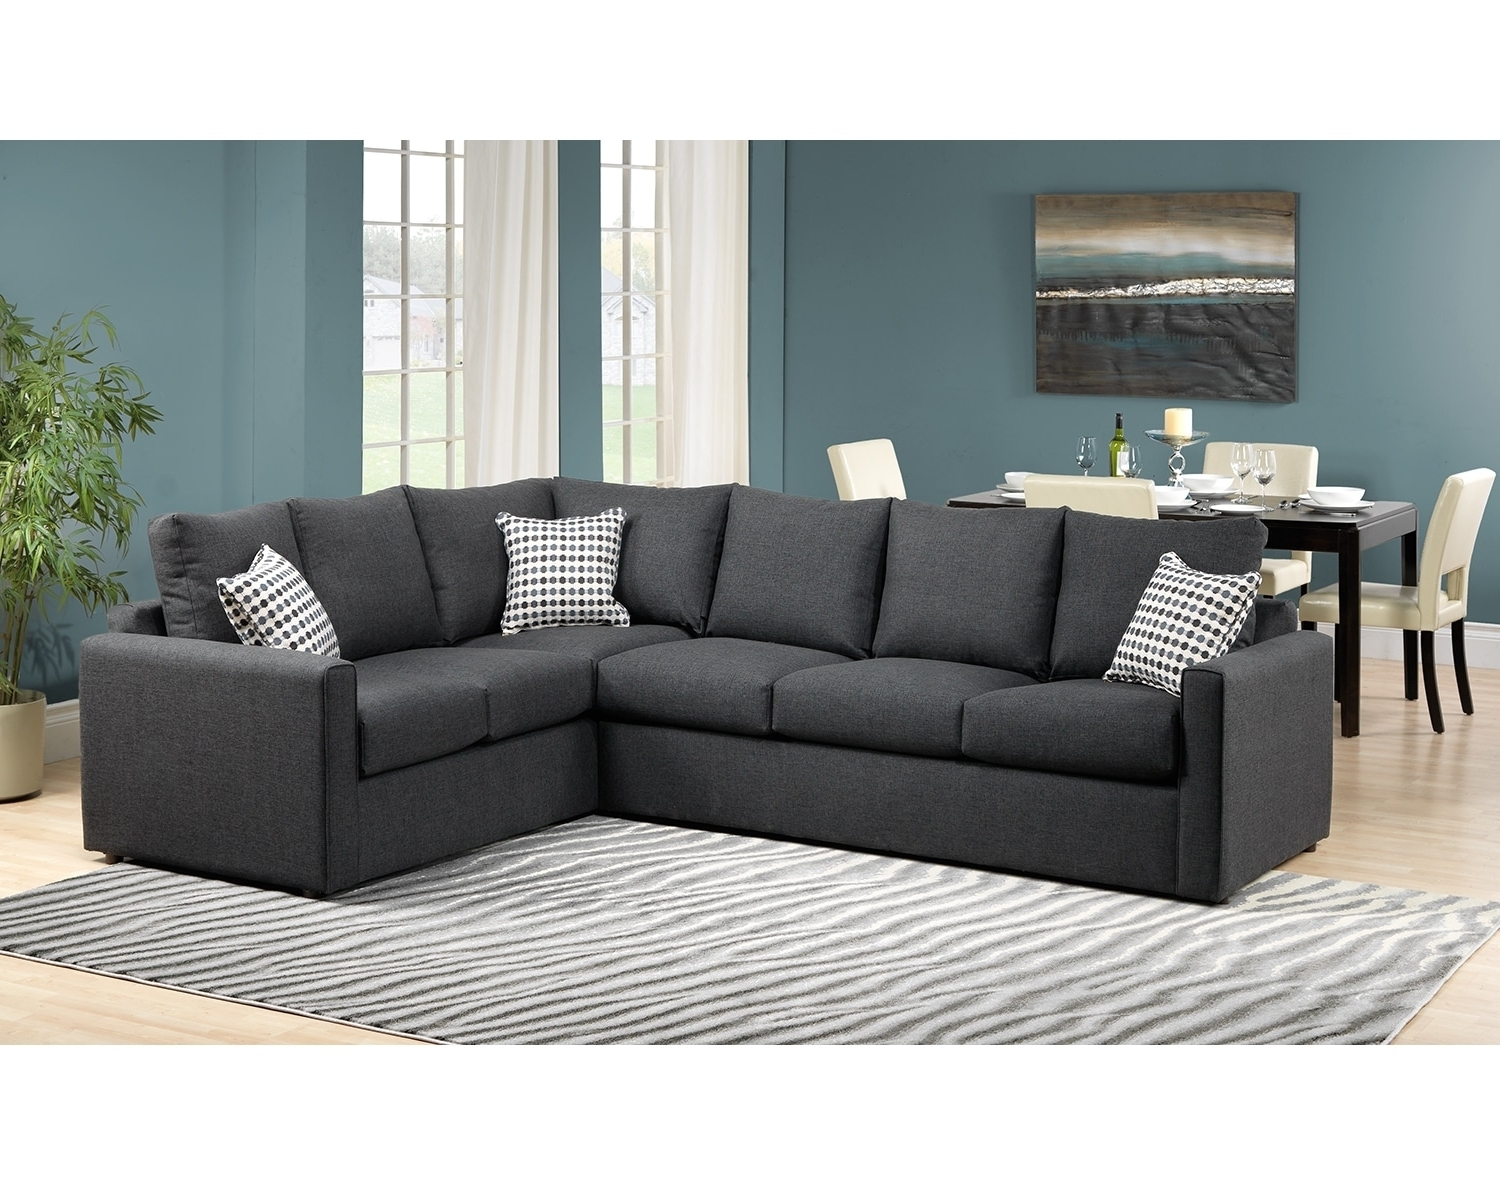 Most Current Athina 2 Piece Sectional With Left Facing Queen Sofa Bed For Sectional Sofas At Brampton (View 13 of 15)